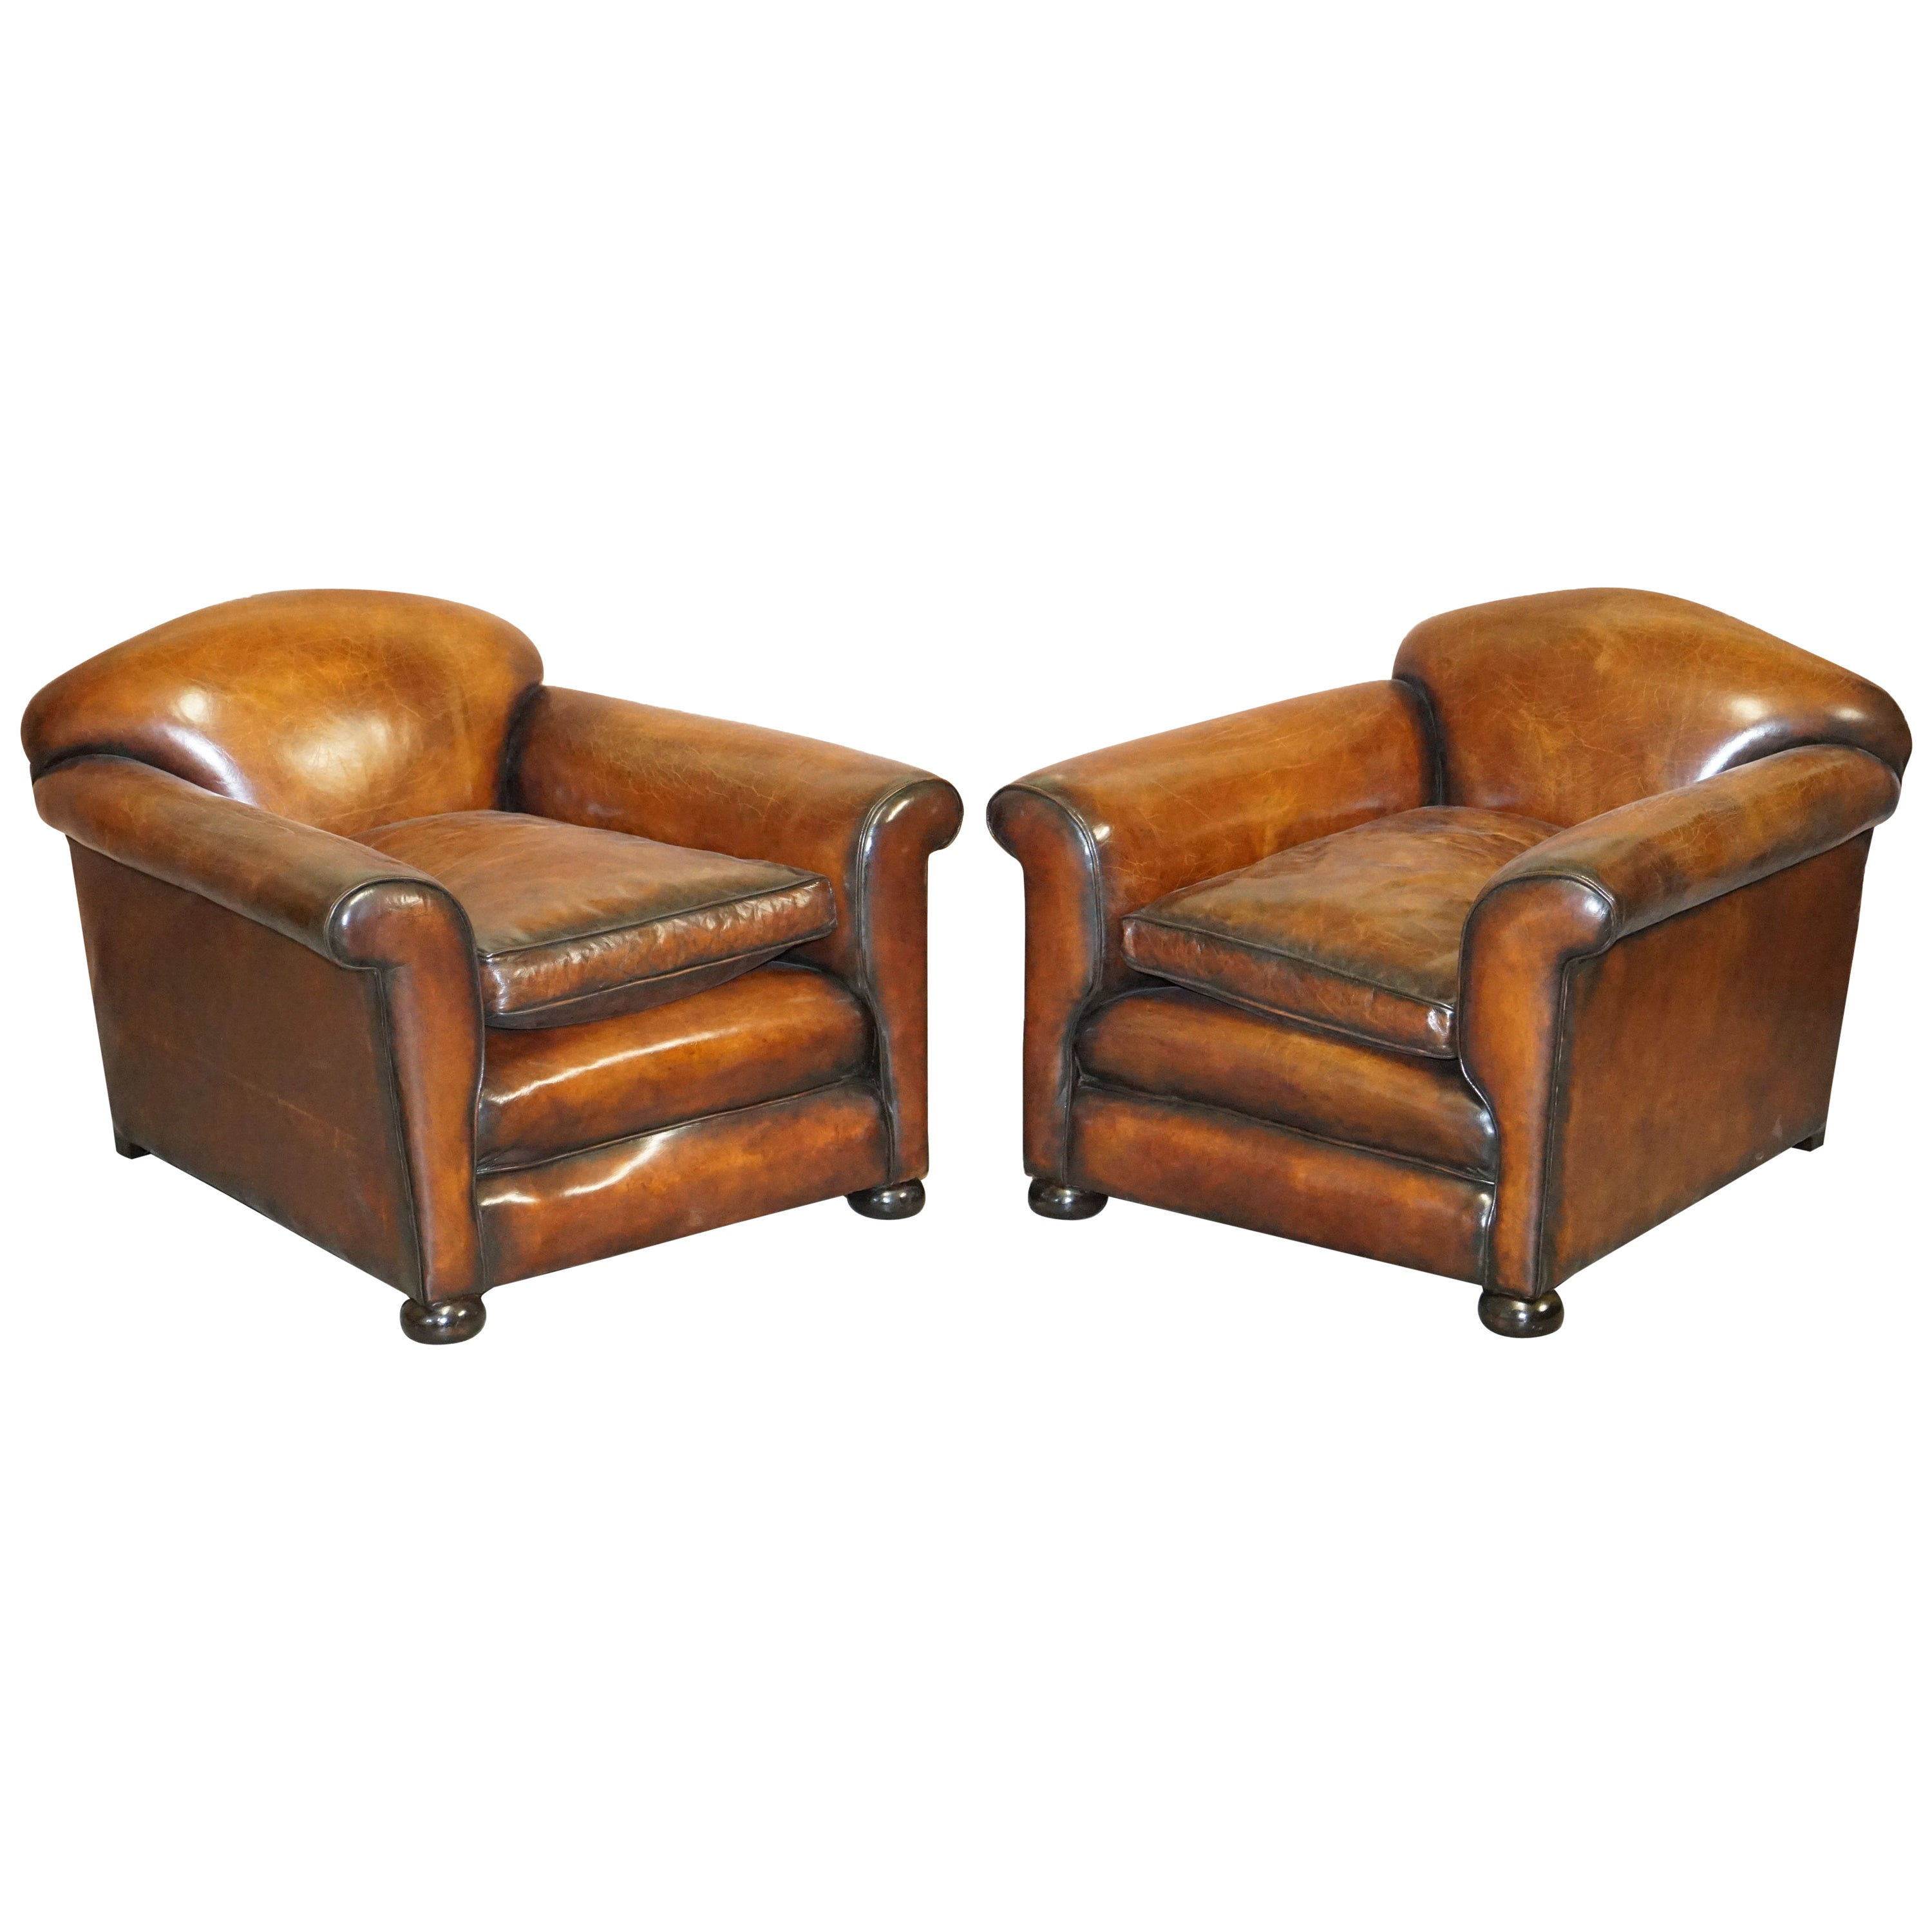 Sublime Pair of Victorian Fully Restored Chestnut Brown Leather Club Armchairs